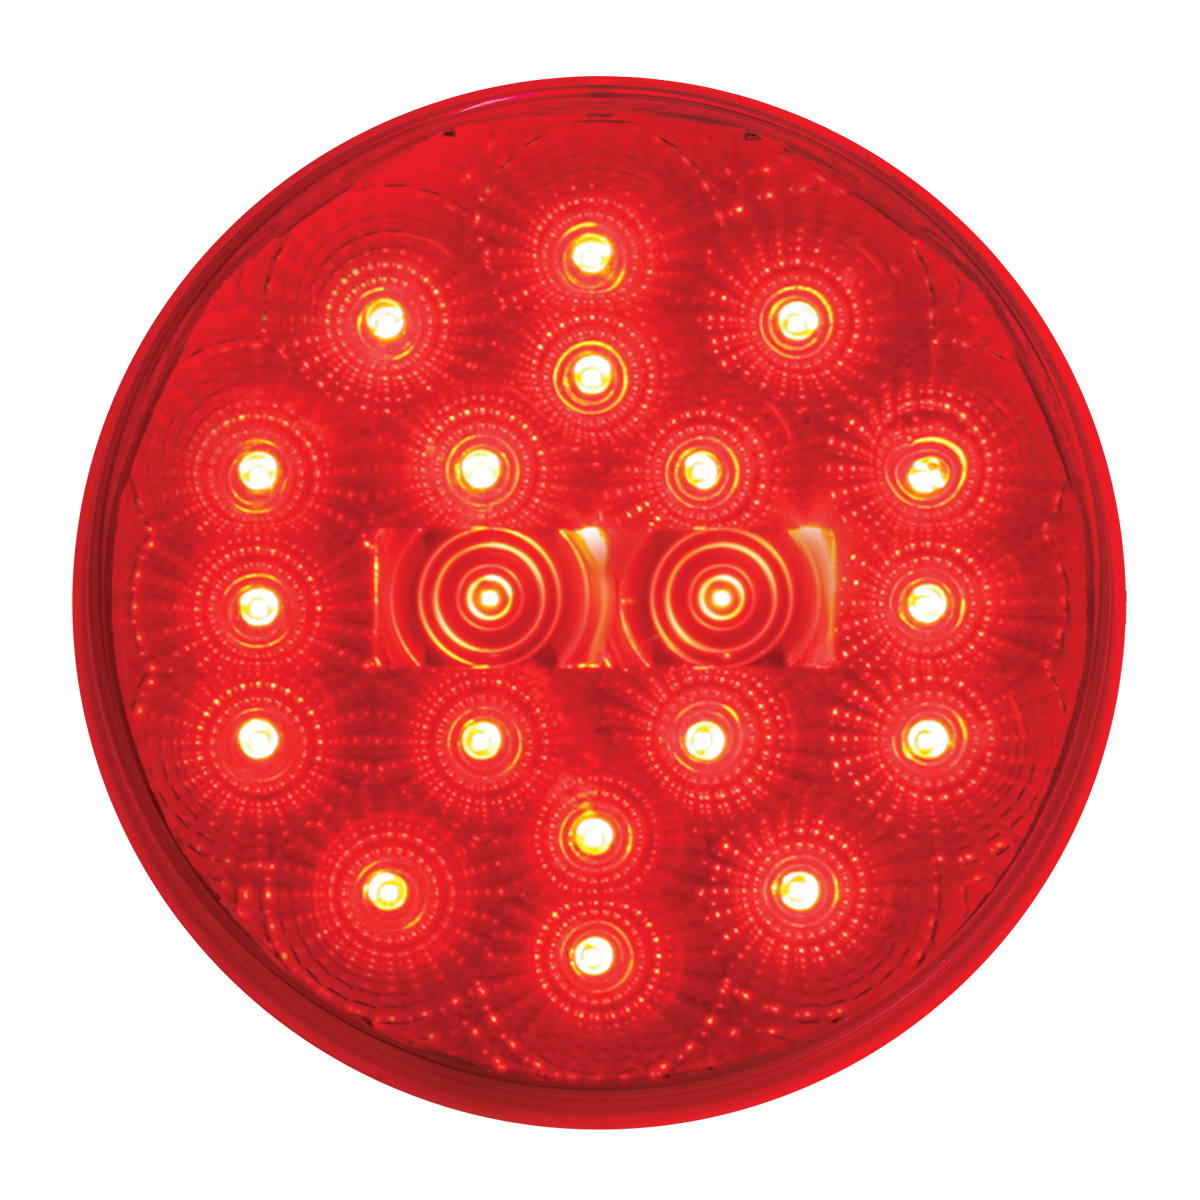 "#77093 4"" Round Fleet LED Flat Red/Clear Light"